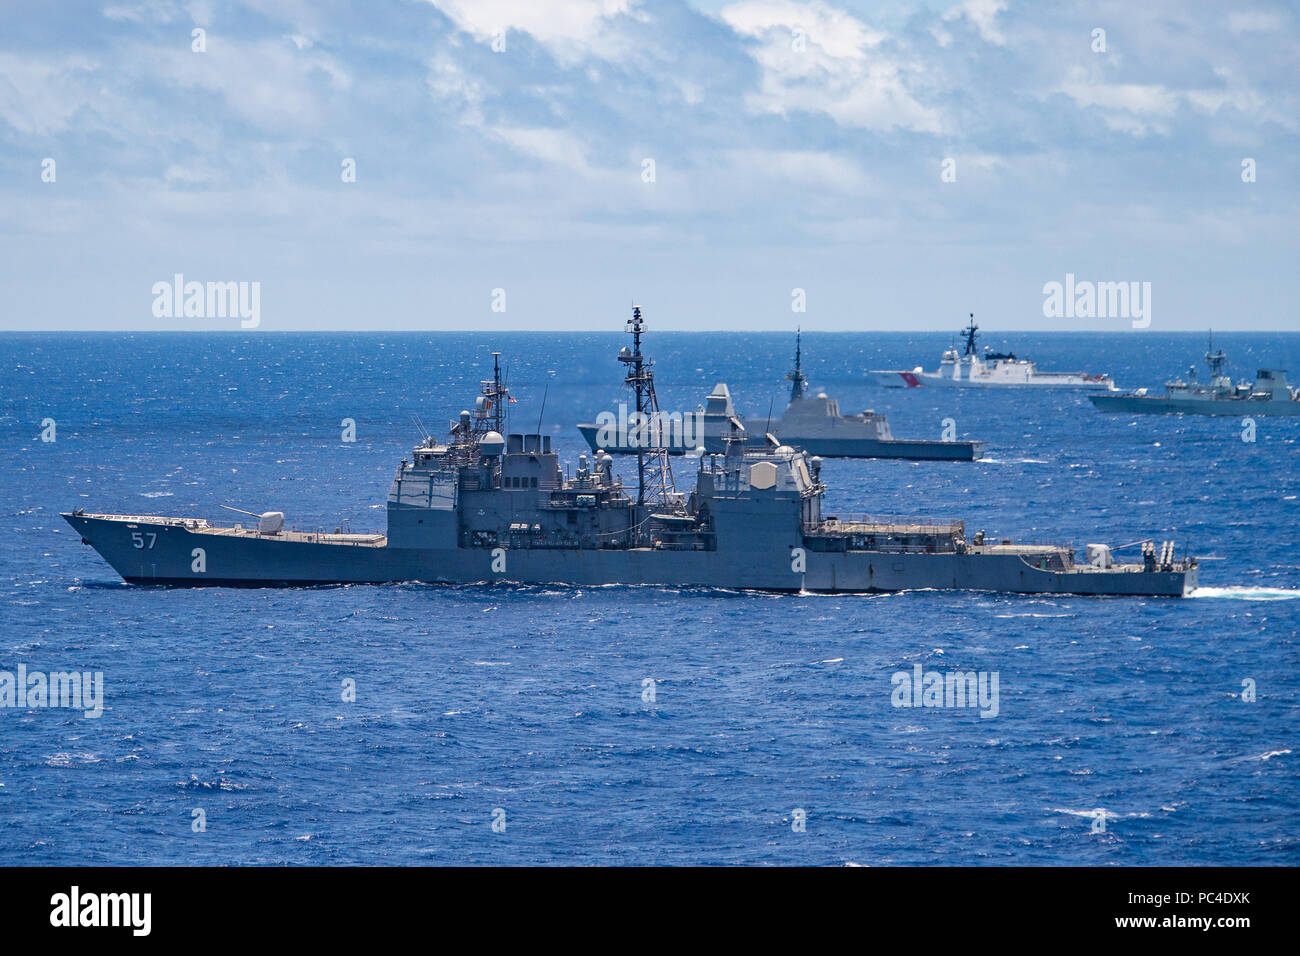 180726-N-CW570-3067 PACIFIC OCEAN (July 26, 2018) The guided-missile cruiser USS Lake Champlain (CG 57) participates in a group sail during the Rim of the Pacific (RIMPAC) exercise off the coast of Hawaii, July 26. Twenty-five nations, 46 ships and five submarines, and about 200 aircraft and 25,000 personnel are participating in RIMPAC from June 27 to Aug. 2 in and around the Hawaiian Islands and Southern California. The world's largest international maritime exercise, RIMPAC provides a unique training opportunity while fostering and sustaining cooperative relationships among participants crit Stock Photo